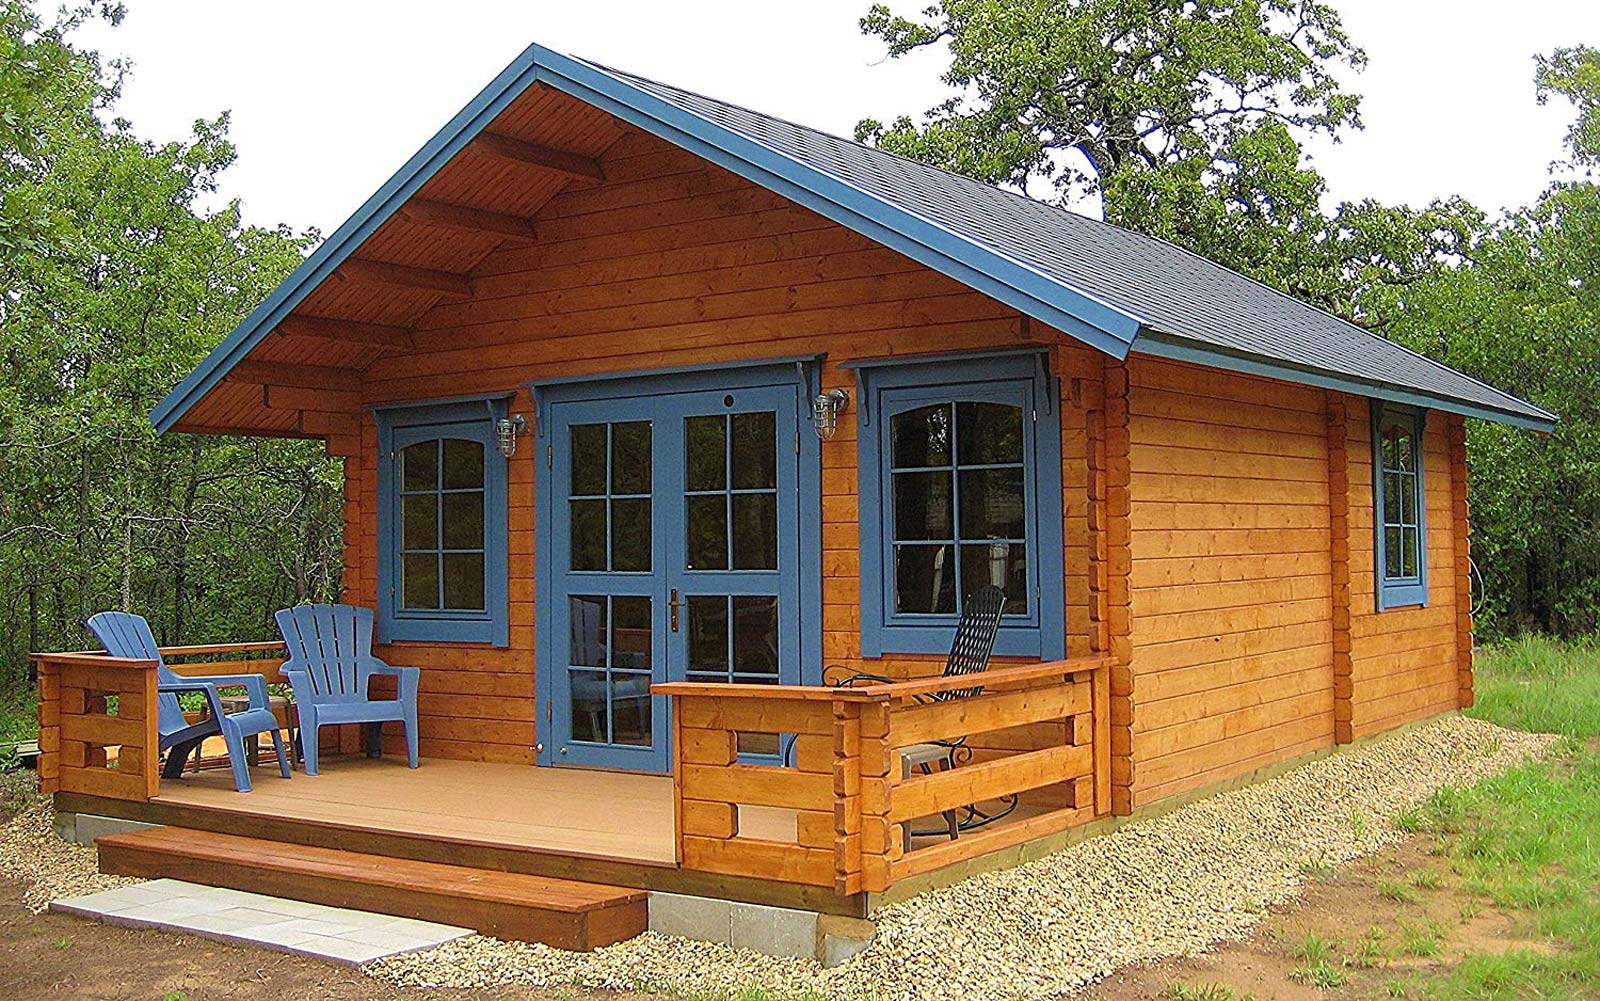 Amazon Is Selling This Tiny House for $18,000, and It Only Takes up to 3 Days to Build